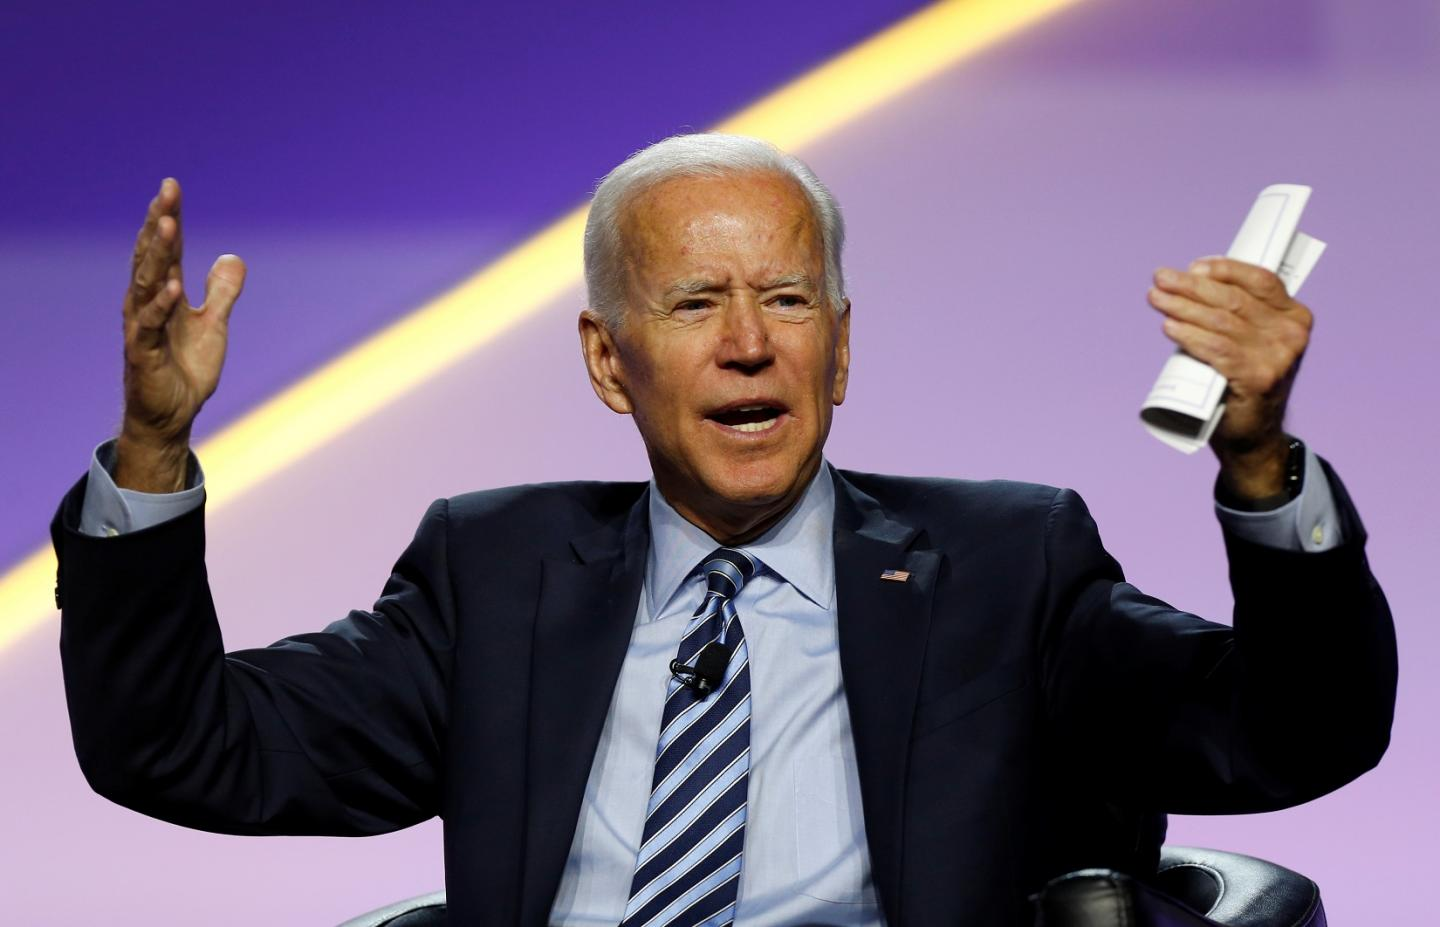 Bidens Campaign in Crisis? Former Obama VP Scrambling to Reassure Donors